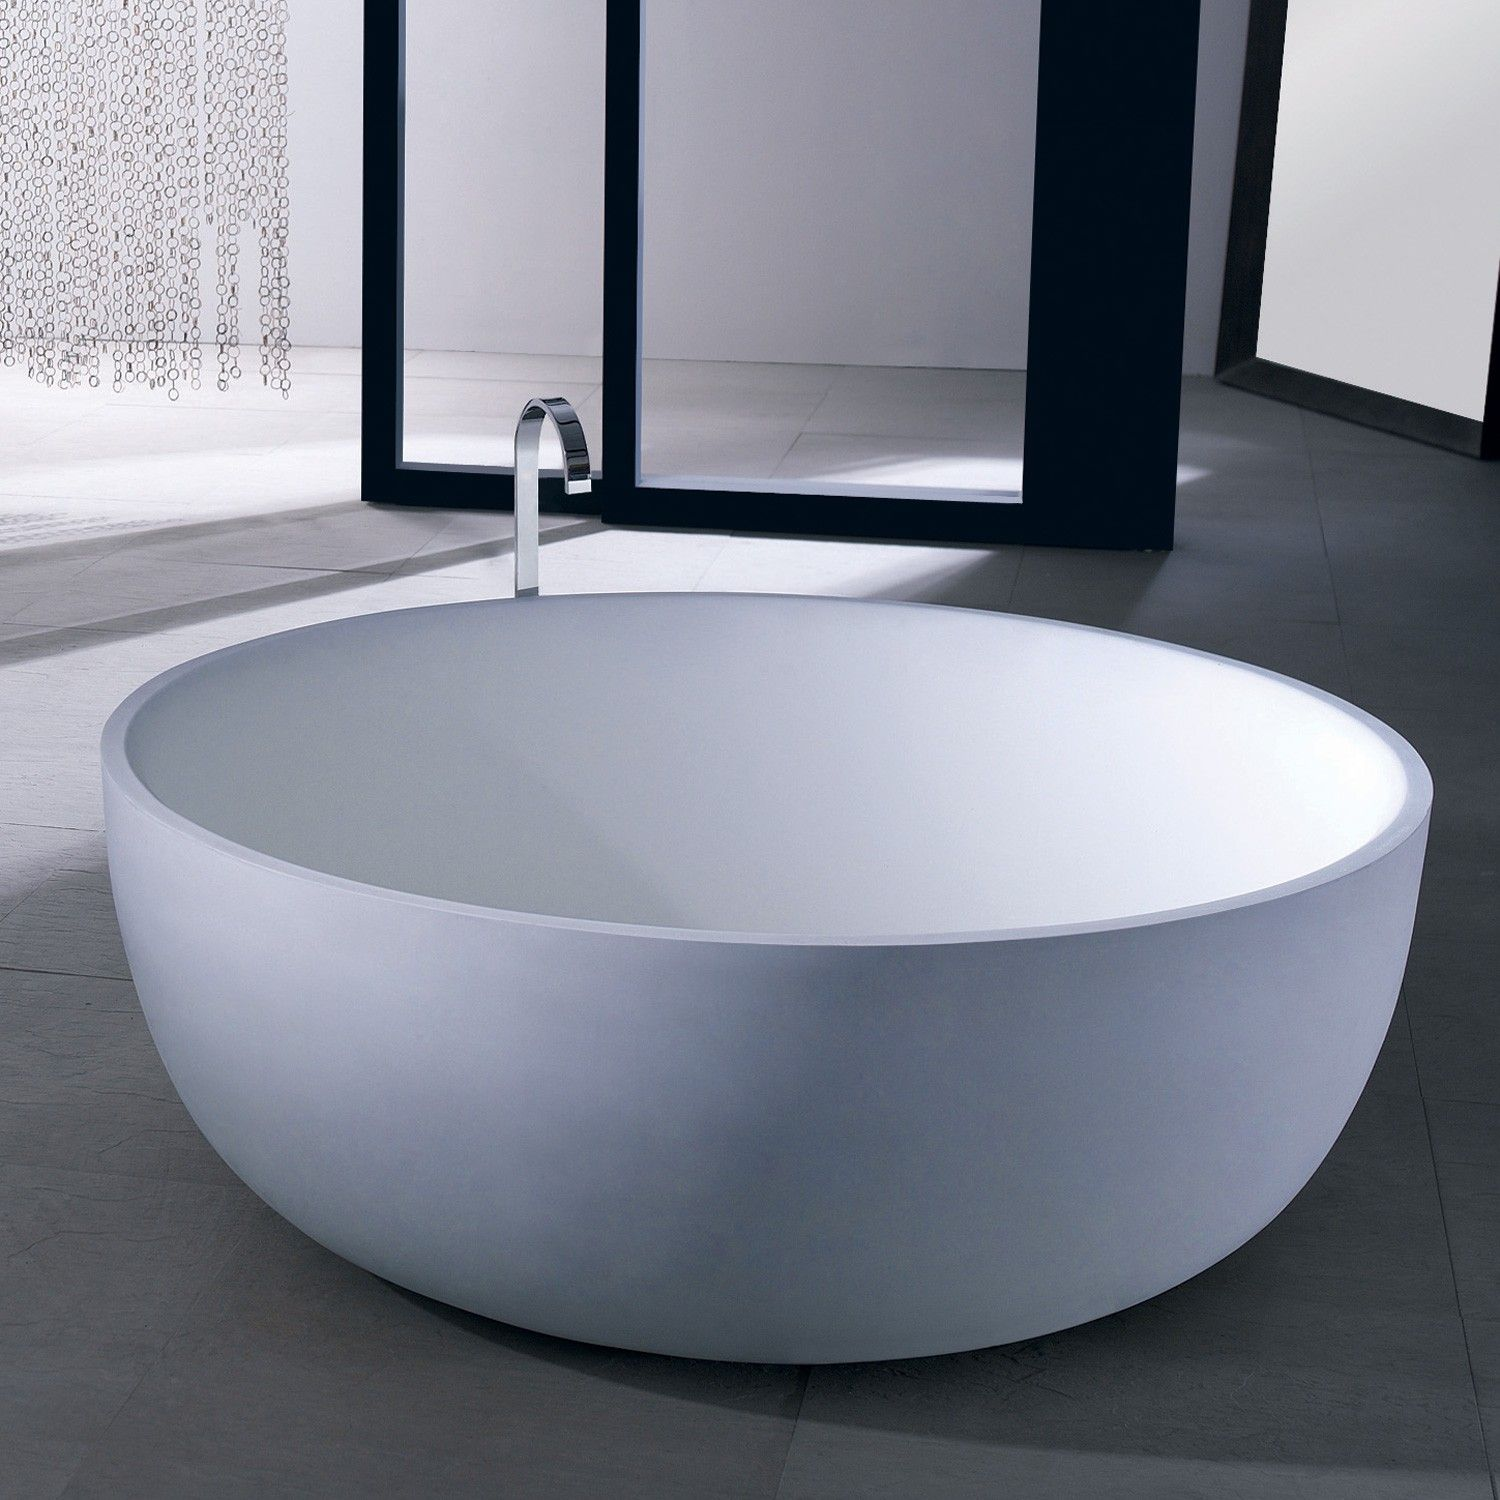 53 Suki Round Resin Freestanding Tub Bathtubs Bathroom